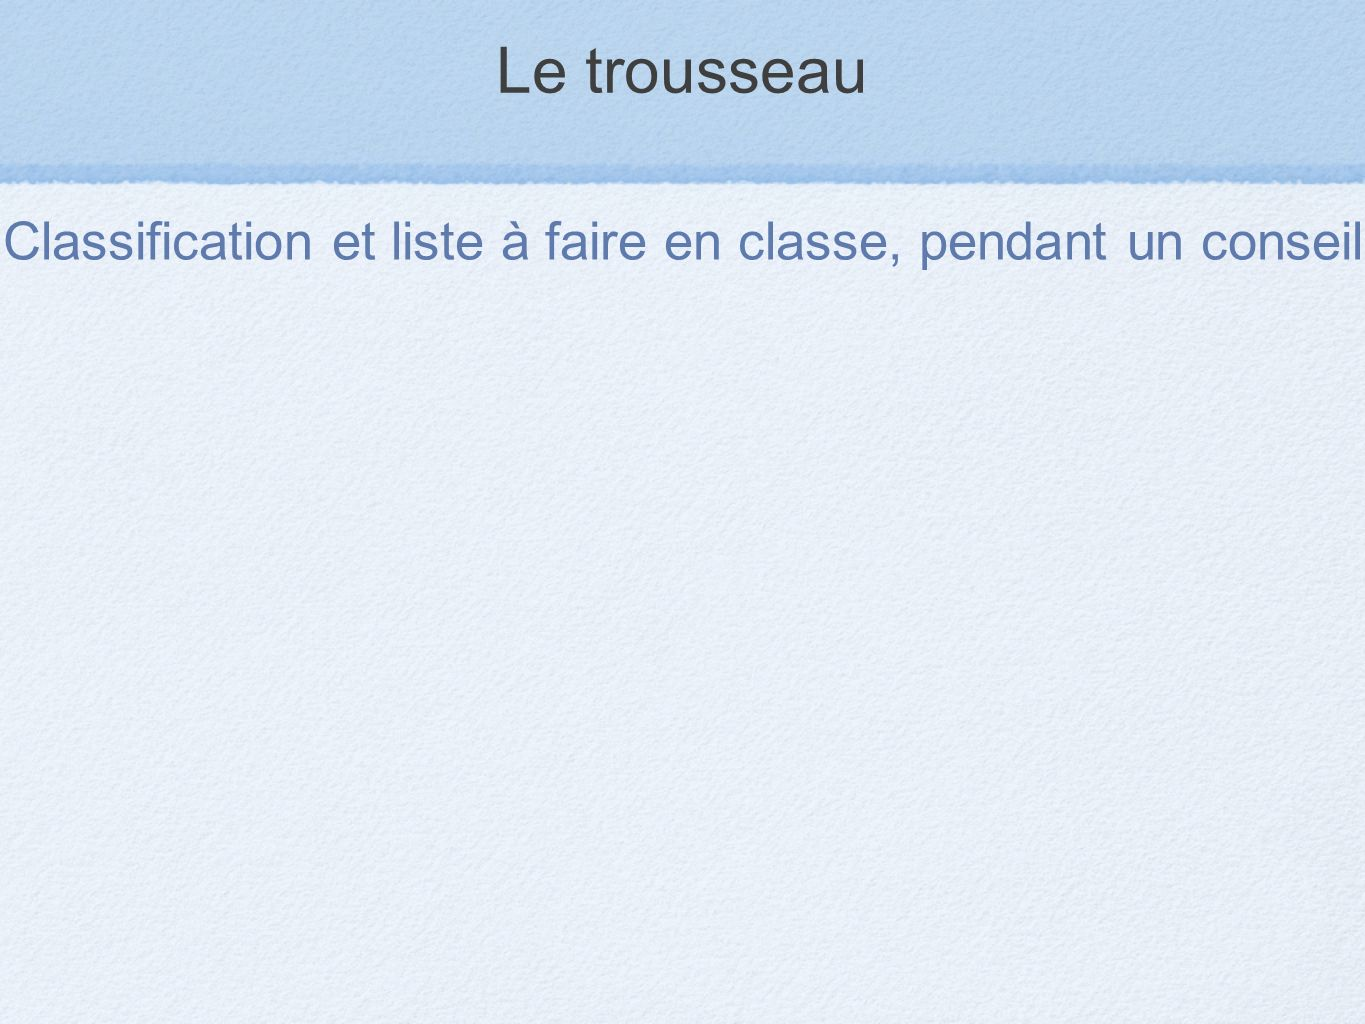 Classification et liste à faire en classe, pendant un conseil